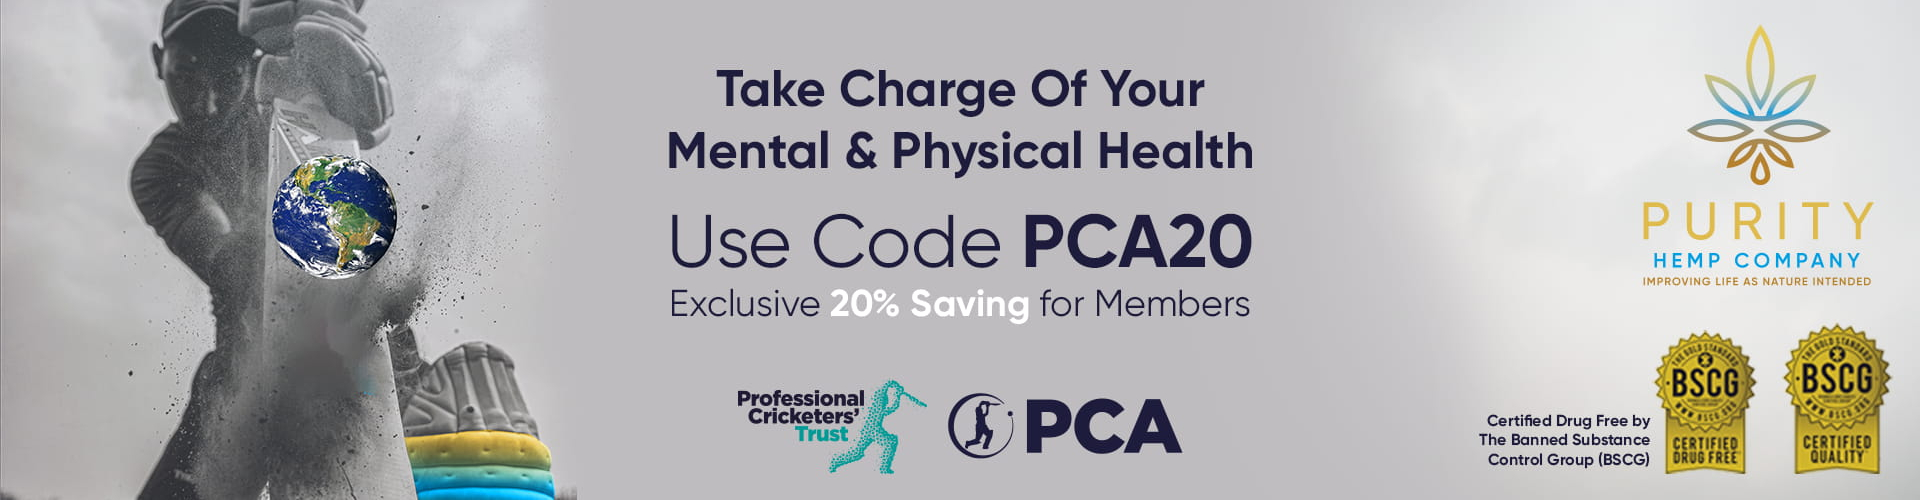 Take Charge of your Mental & Physical Health